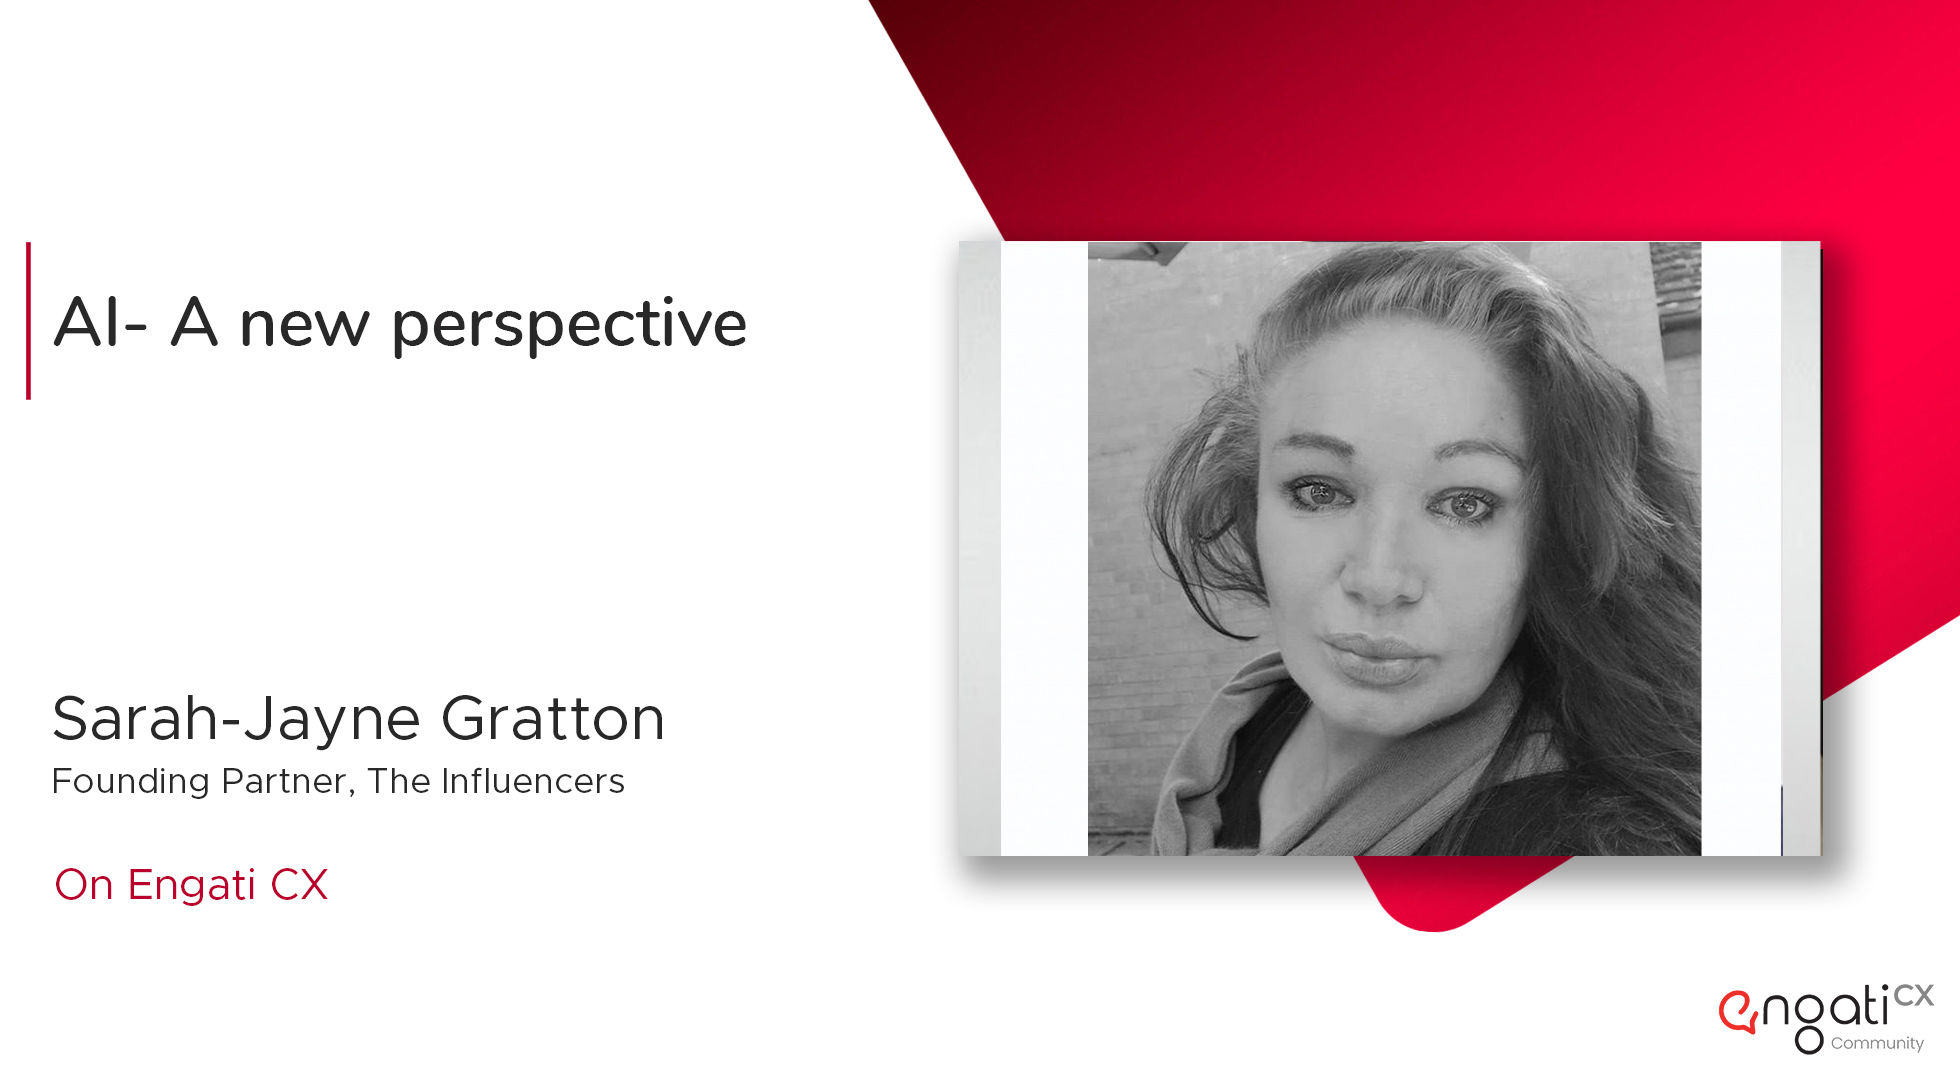 AI - A new perspective | Sarah Gratton | Engati CX